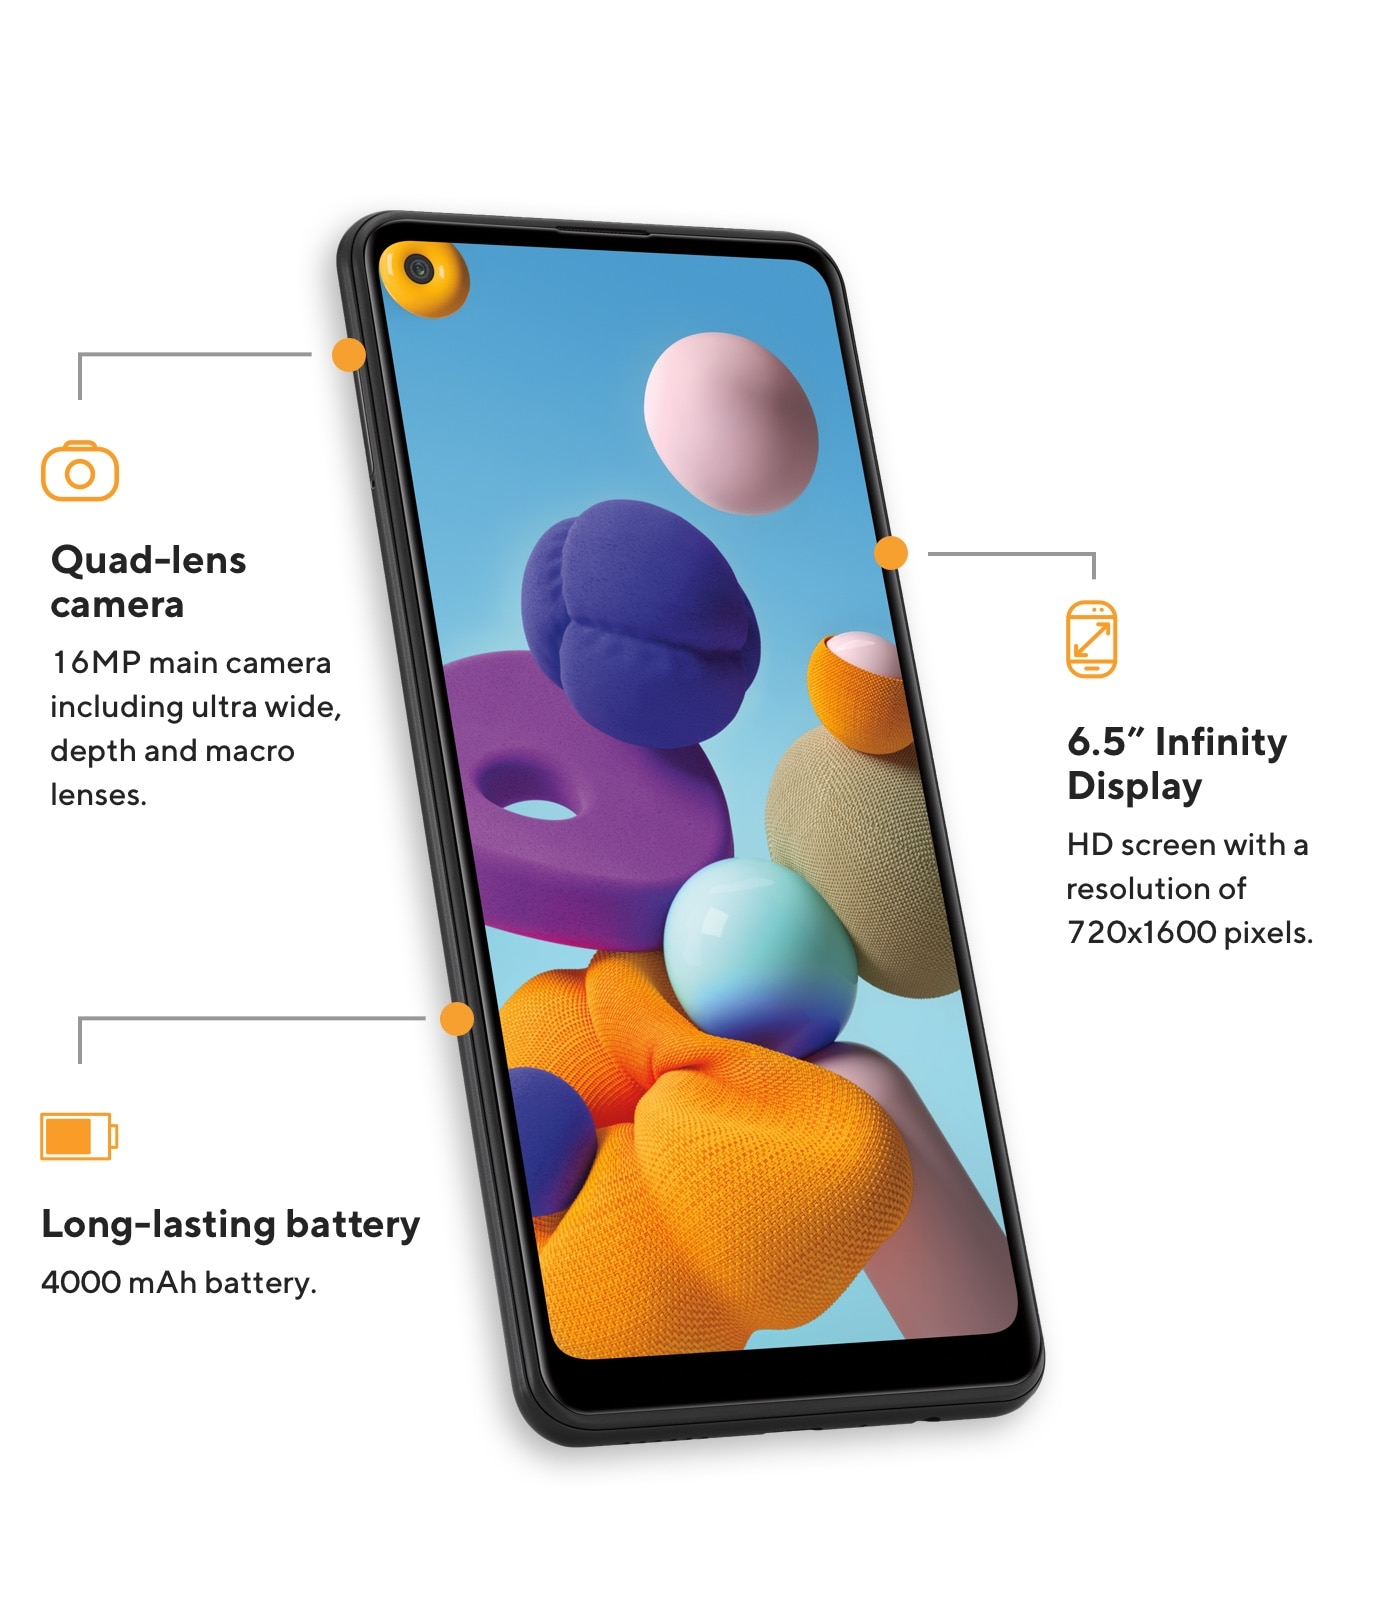 The Samsung A21 offers a quad-lens camera at 16MP including ultra-wide, depth and macro lenses, 6.5 inch Infinity Display with an HD screen offering a resolution of 720 by 1600 pixels, and a long-lasting 4000 mAh battery.